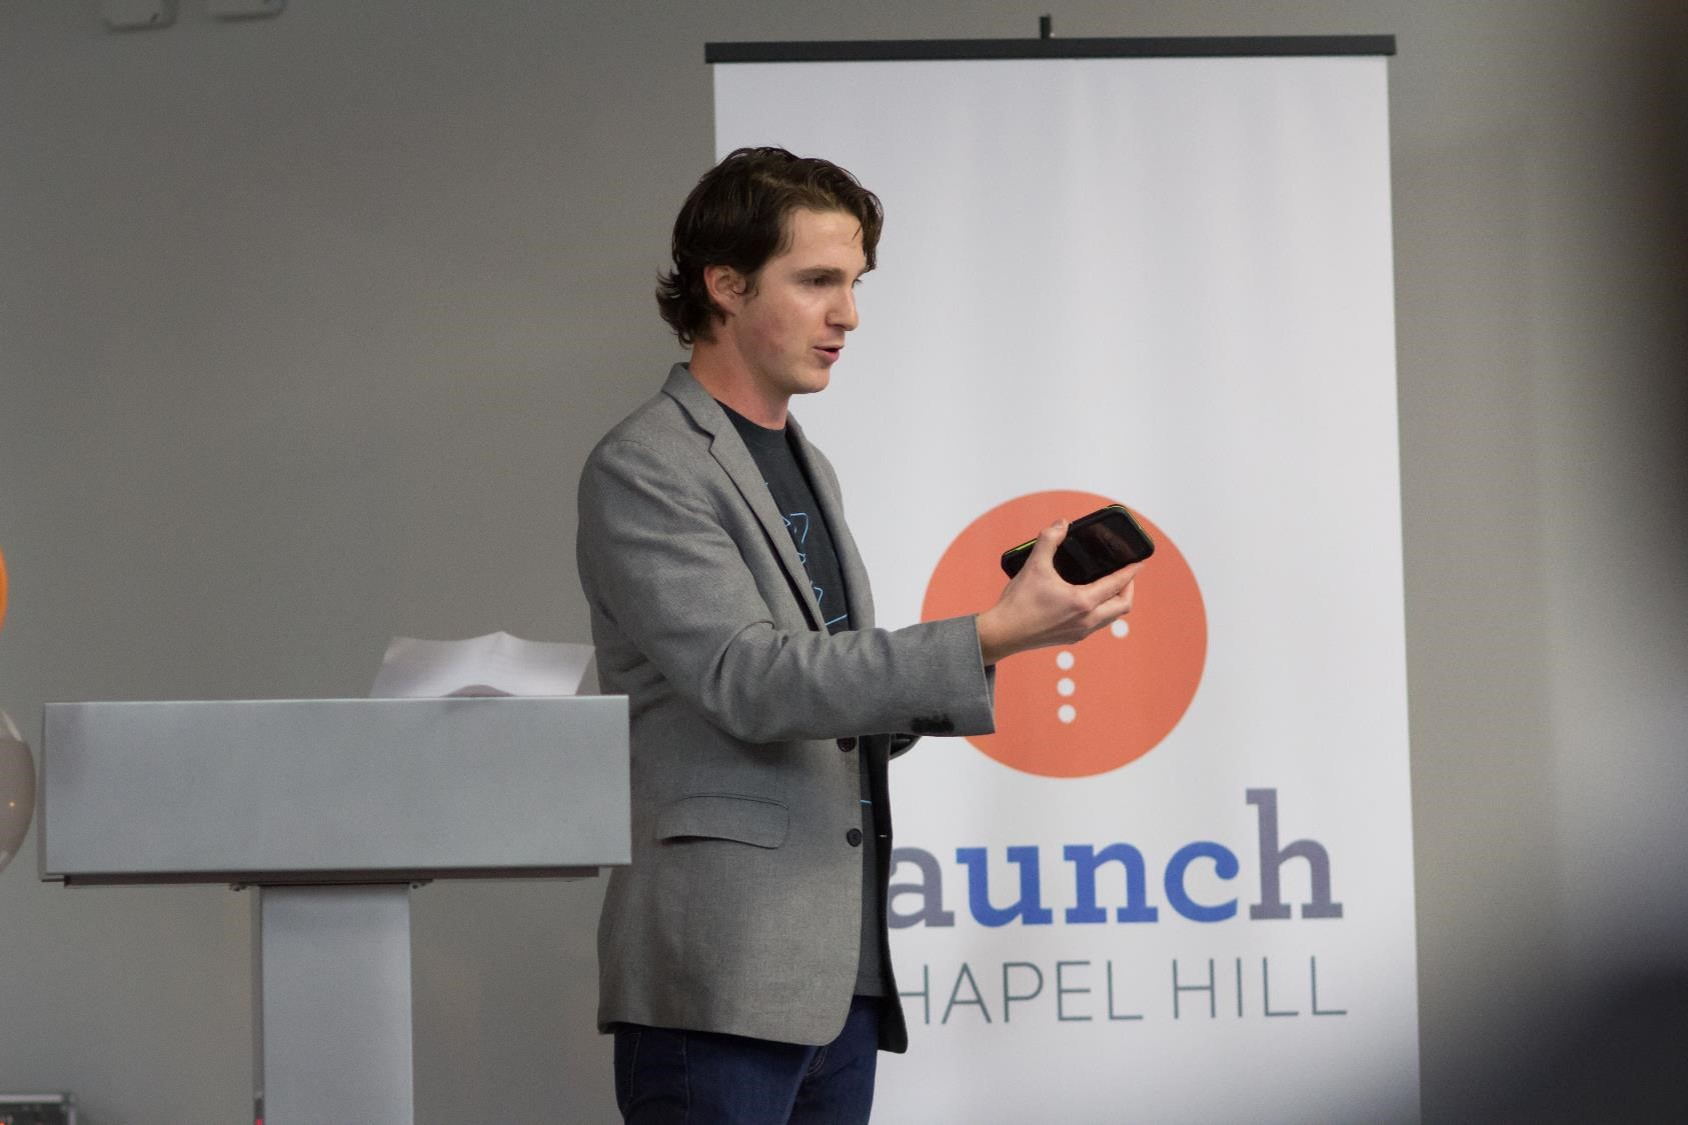 Alain Glanzman, co-founder of WalletFi, describes his company's experience after graduating from Launch Chapel Hill.